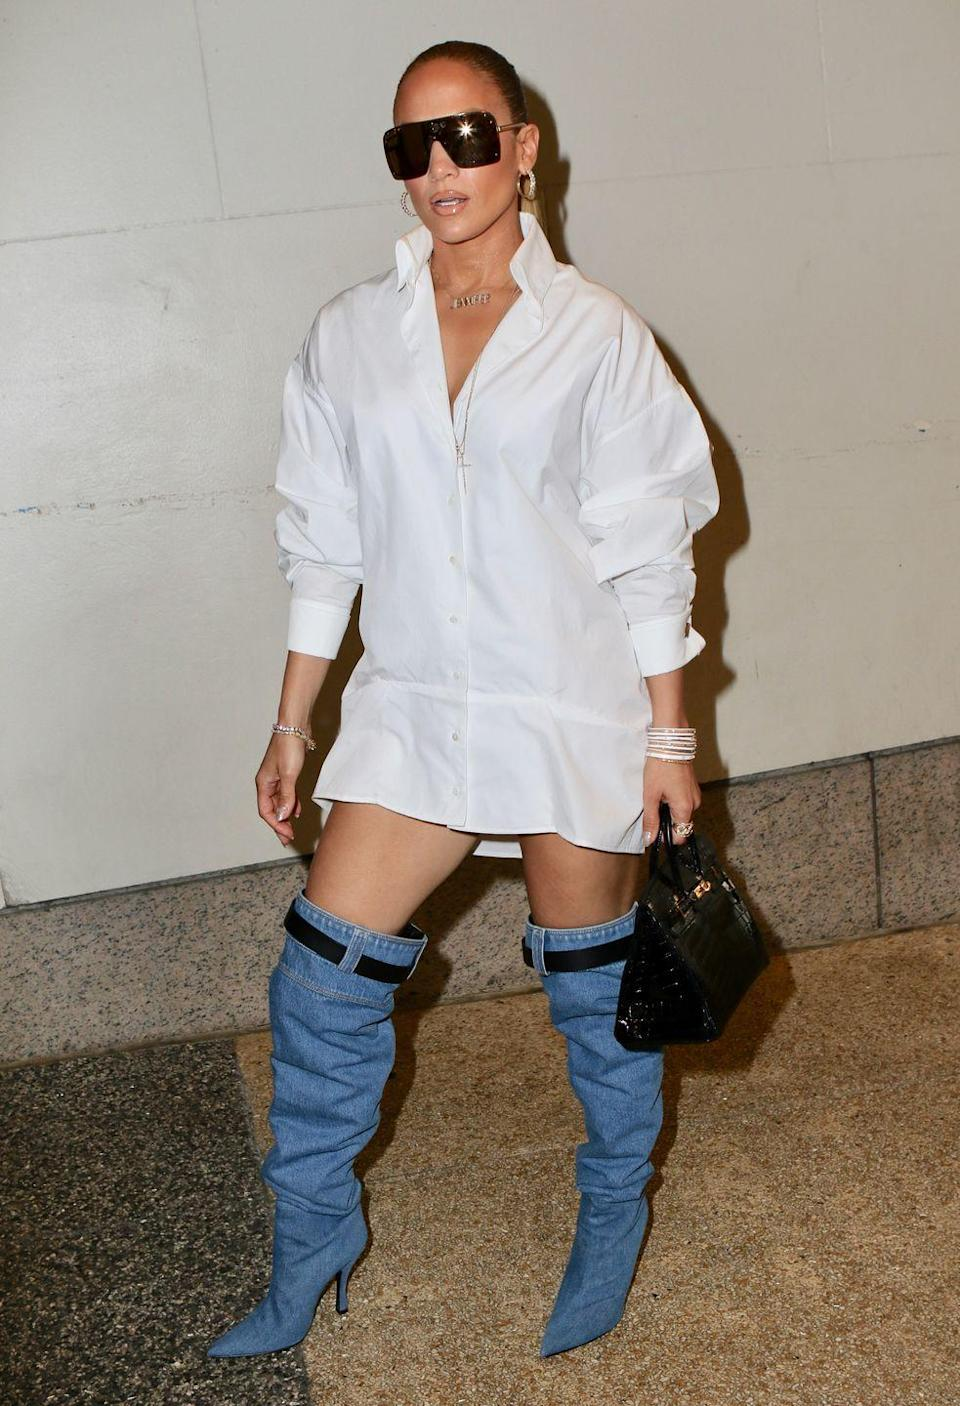 <p>J.Lo is seen in New York City wearing an oversize button-down shirt, a mini Birkin bag, and standout thigh-high denim boots. Her shoes even have their own belts! </p>